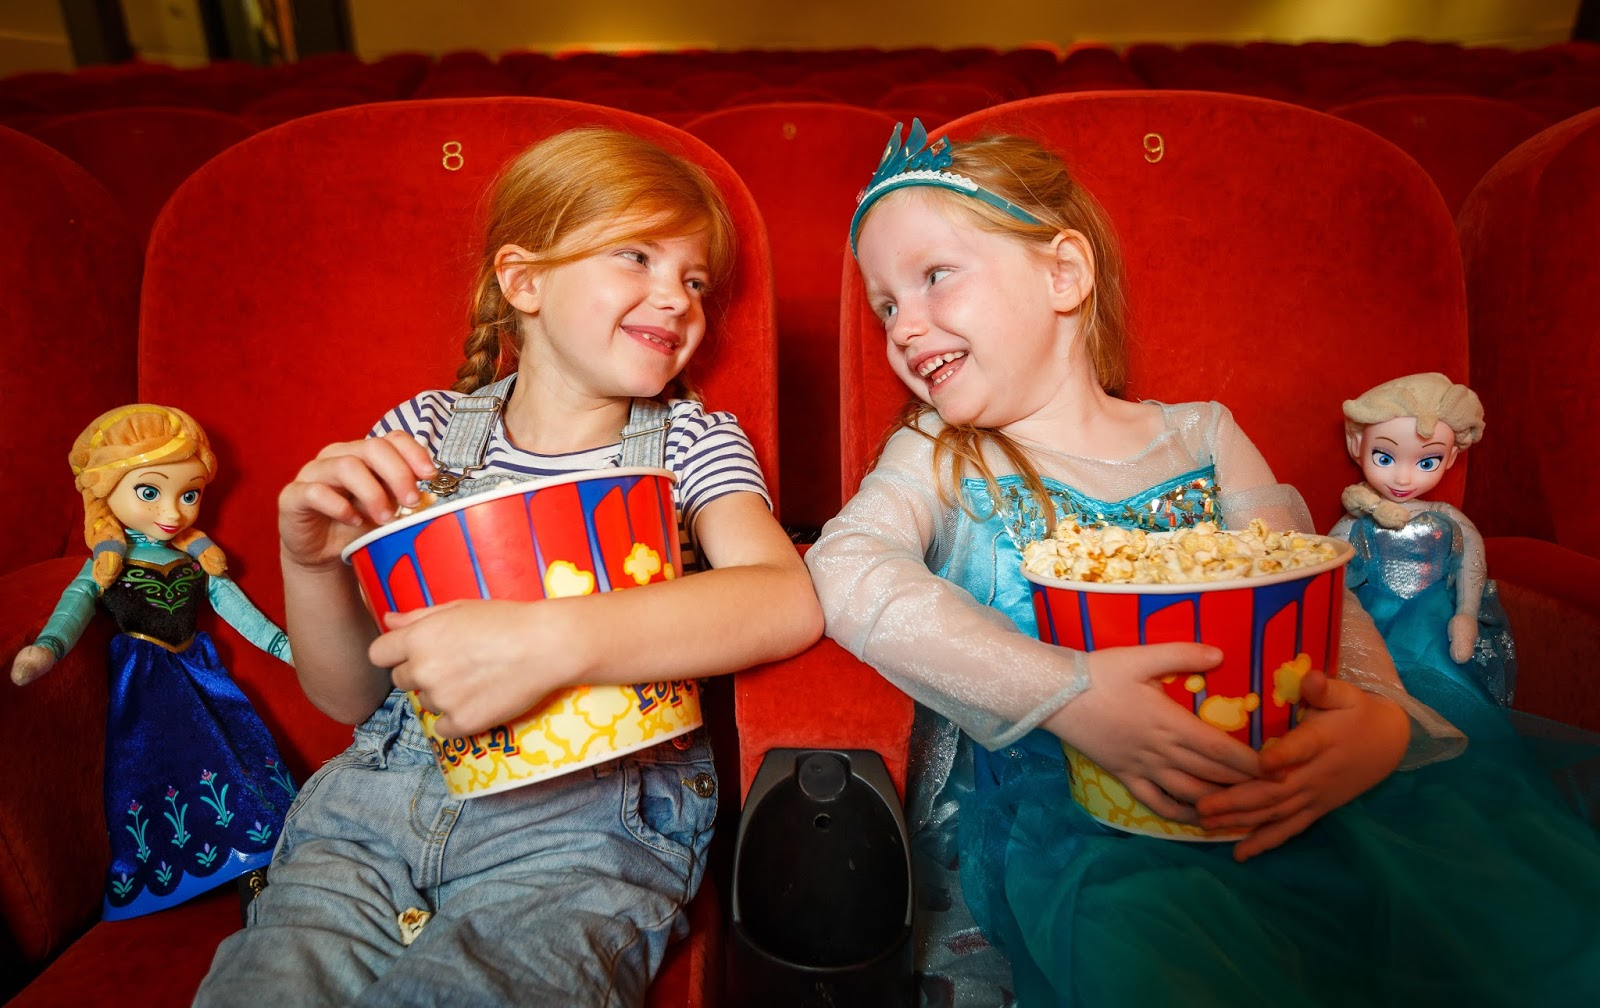 The Fantastical Disney Season at Tyneside Cinema - Kids club cheap cinema, Disney Films